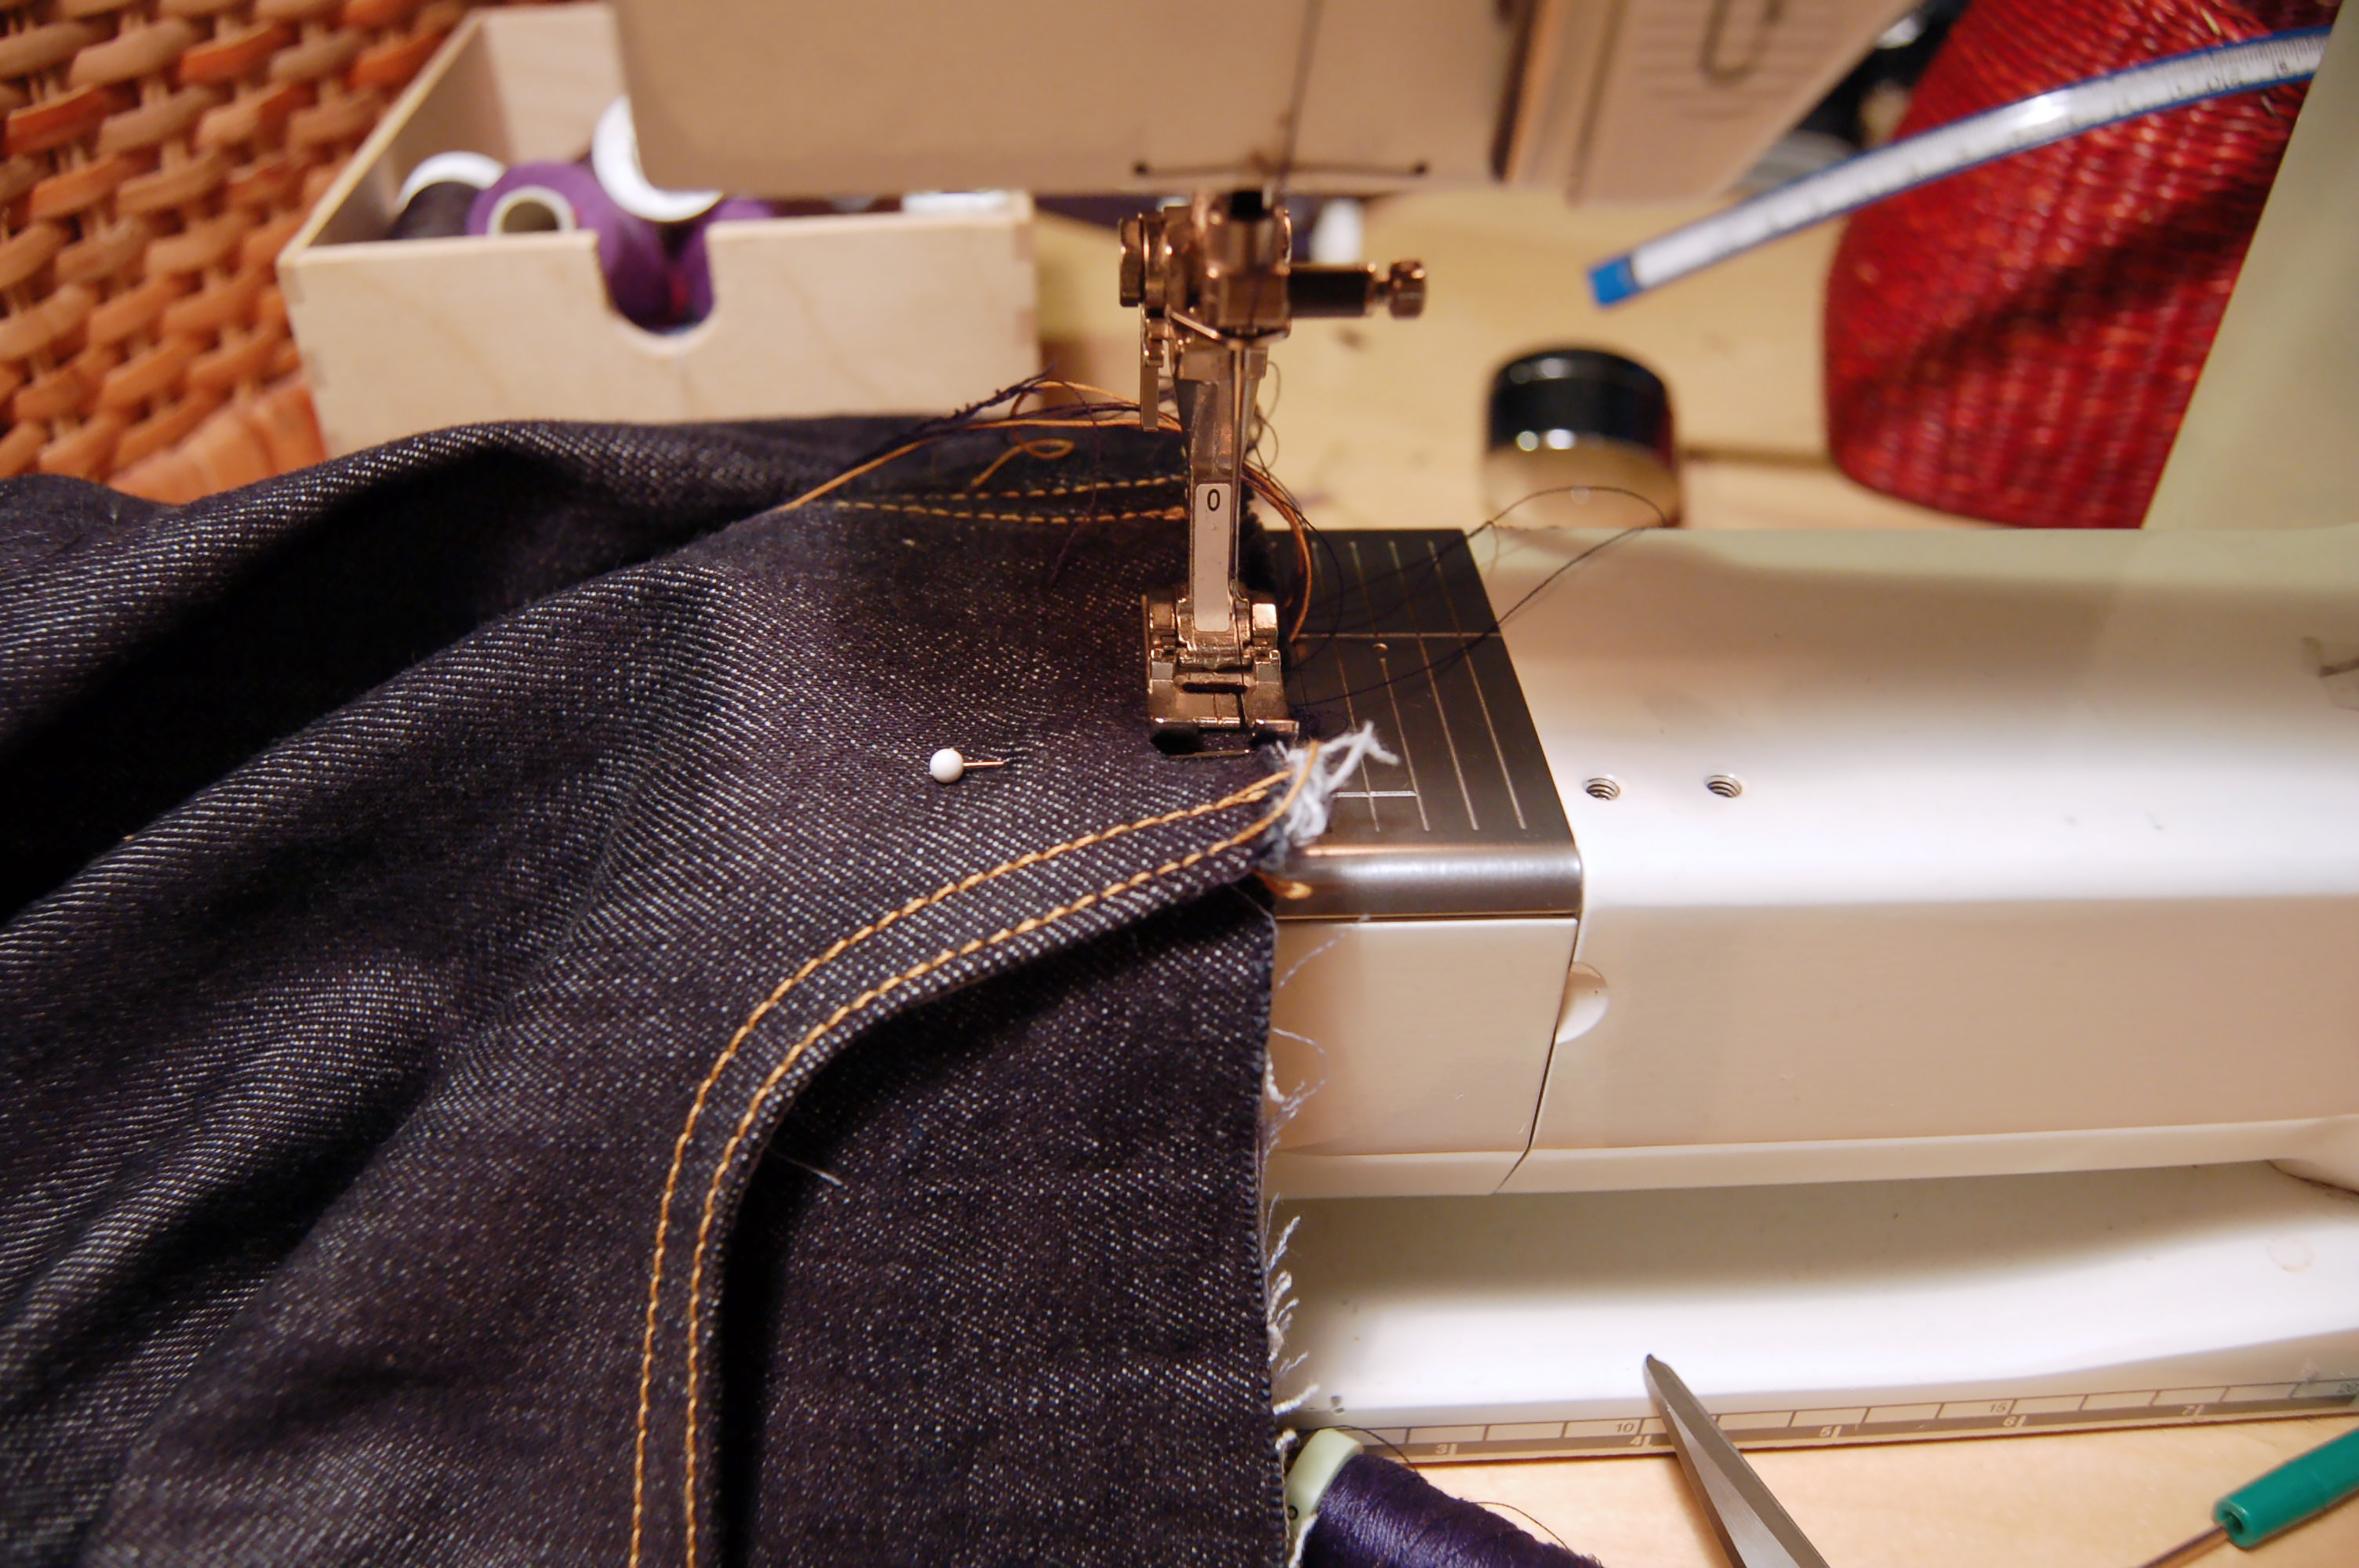 How to make jeans front pockets like a pro